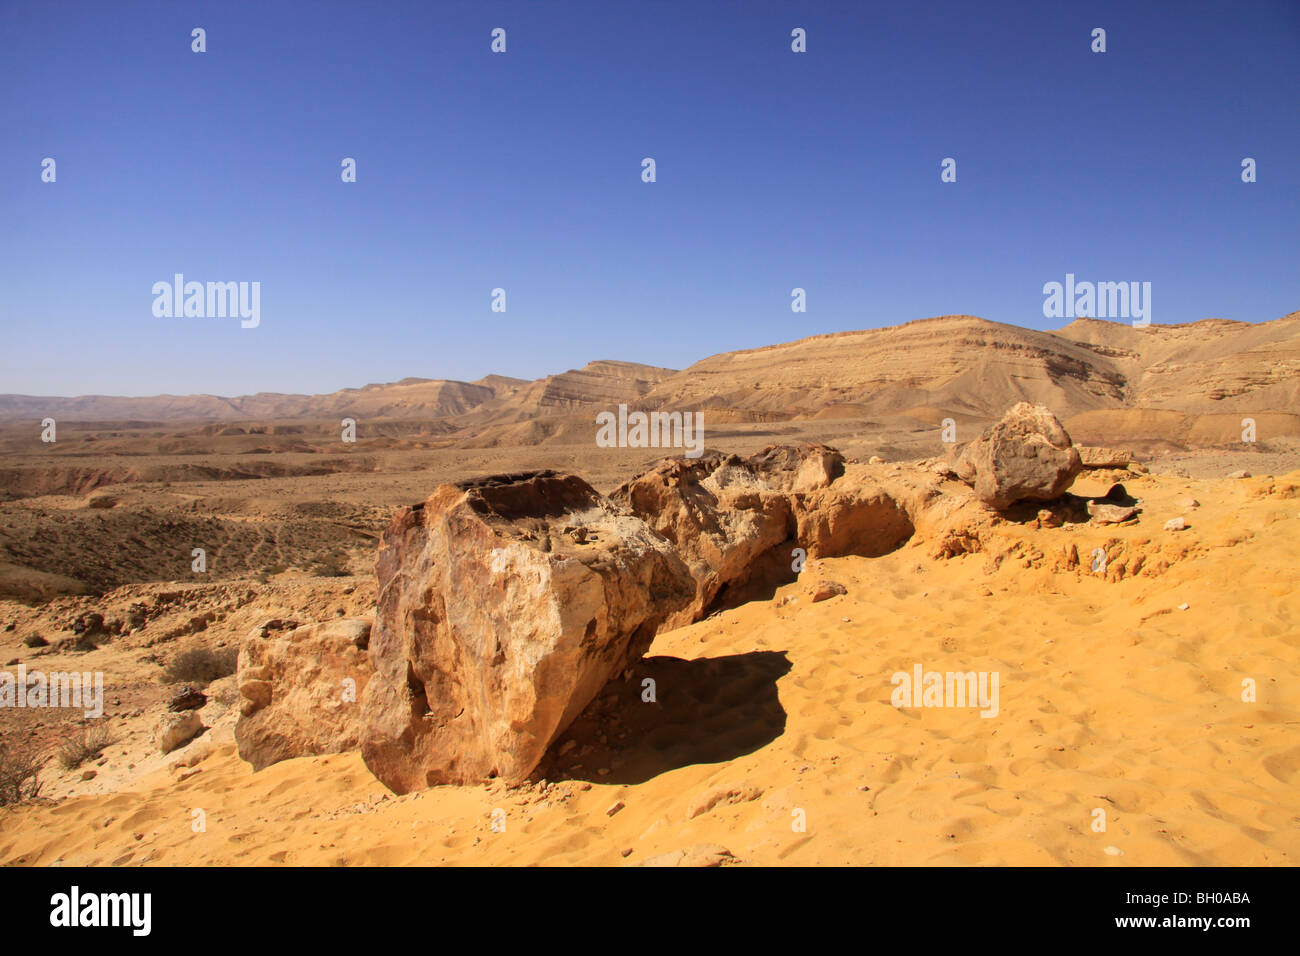 Israel, Negev, Petrified trees in the Large Crater - Stock Image